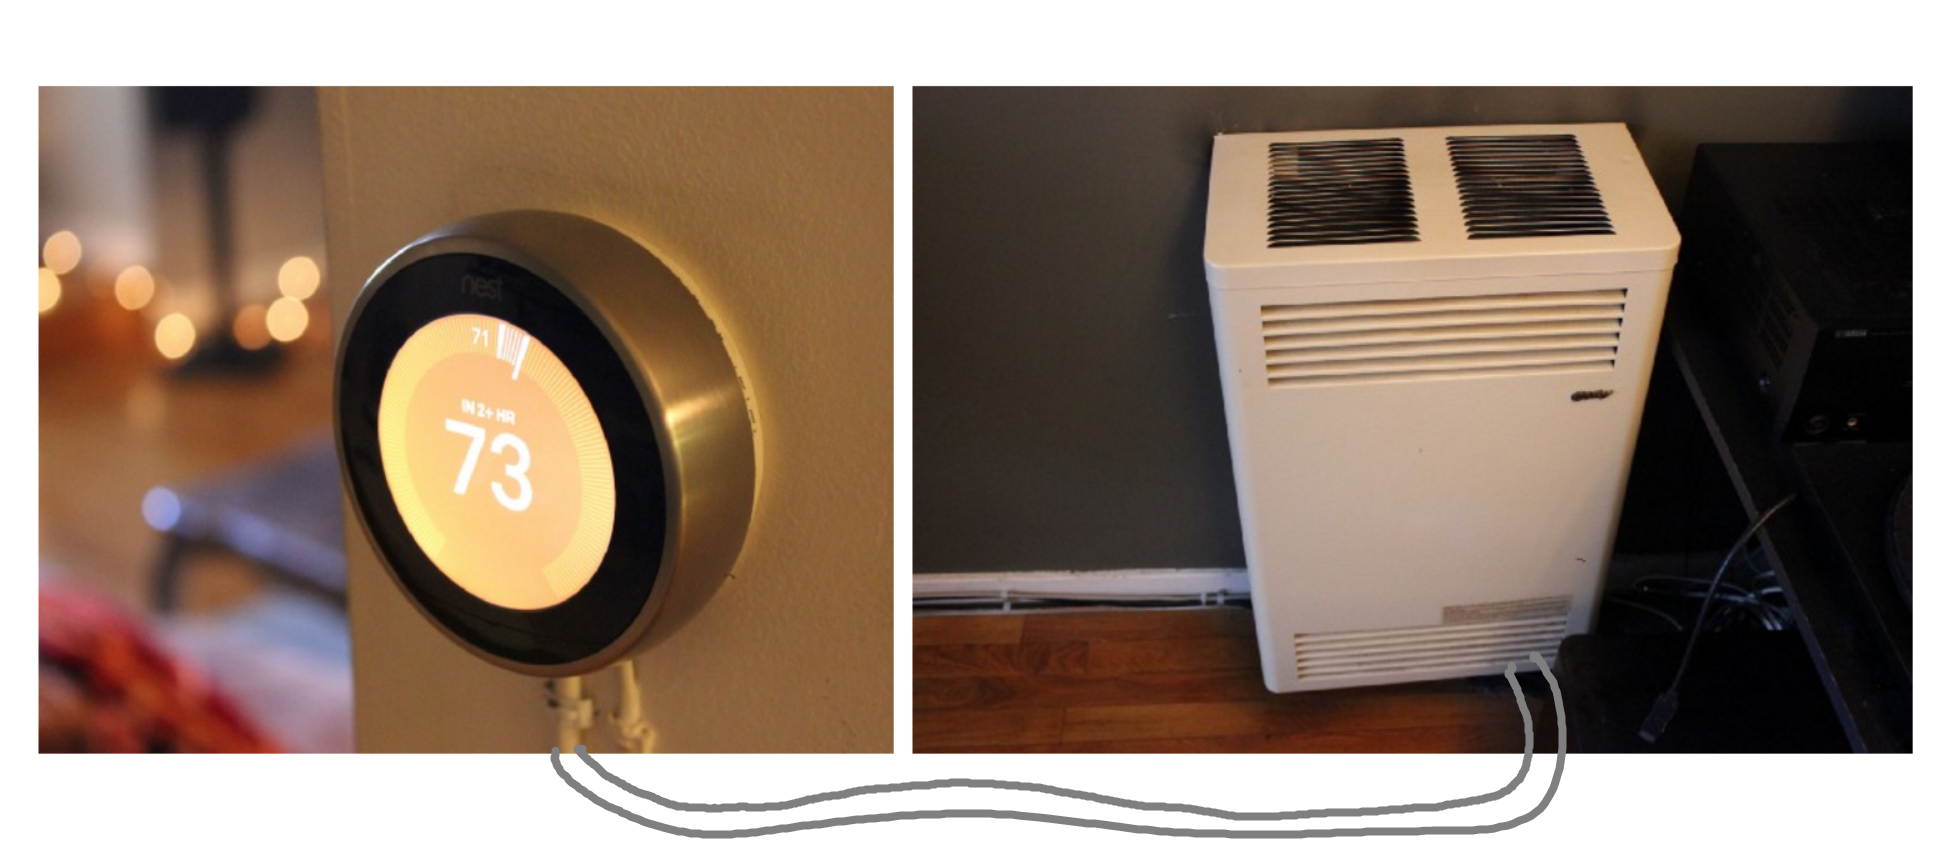 Controlling An Ancient Millivolt Heater With A Nest - Nest T3007Es Wiring Diagram With Heat Pump